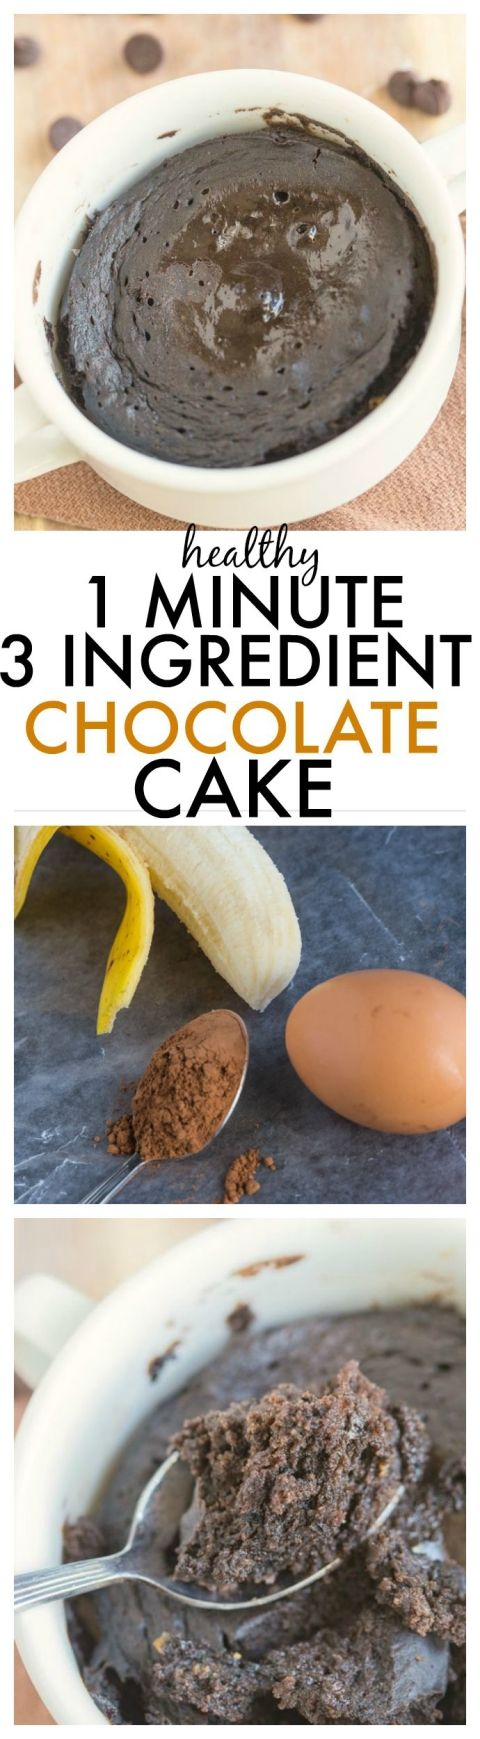 Healthy THREE Ingredient Flourless Chocolate Cake which takes ONE minute- Moist, fluffy and delicious, it clocks in at around 100 calories only- {Paleo, gluten free + tested Vegan option!} -thebigmansworld.com